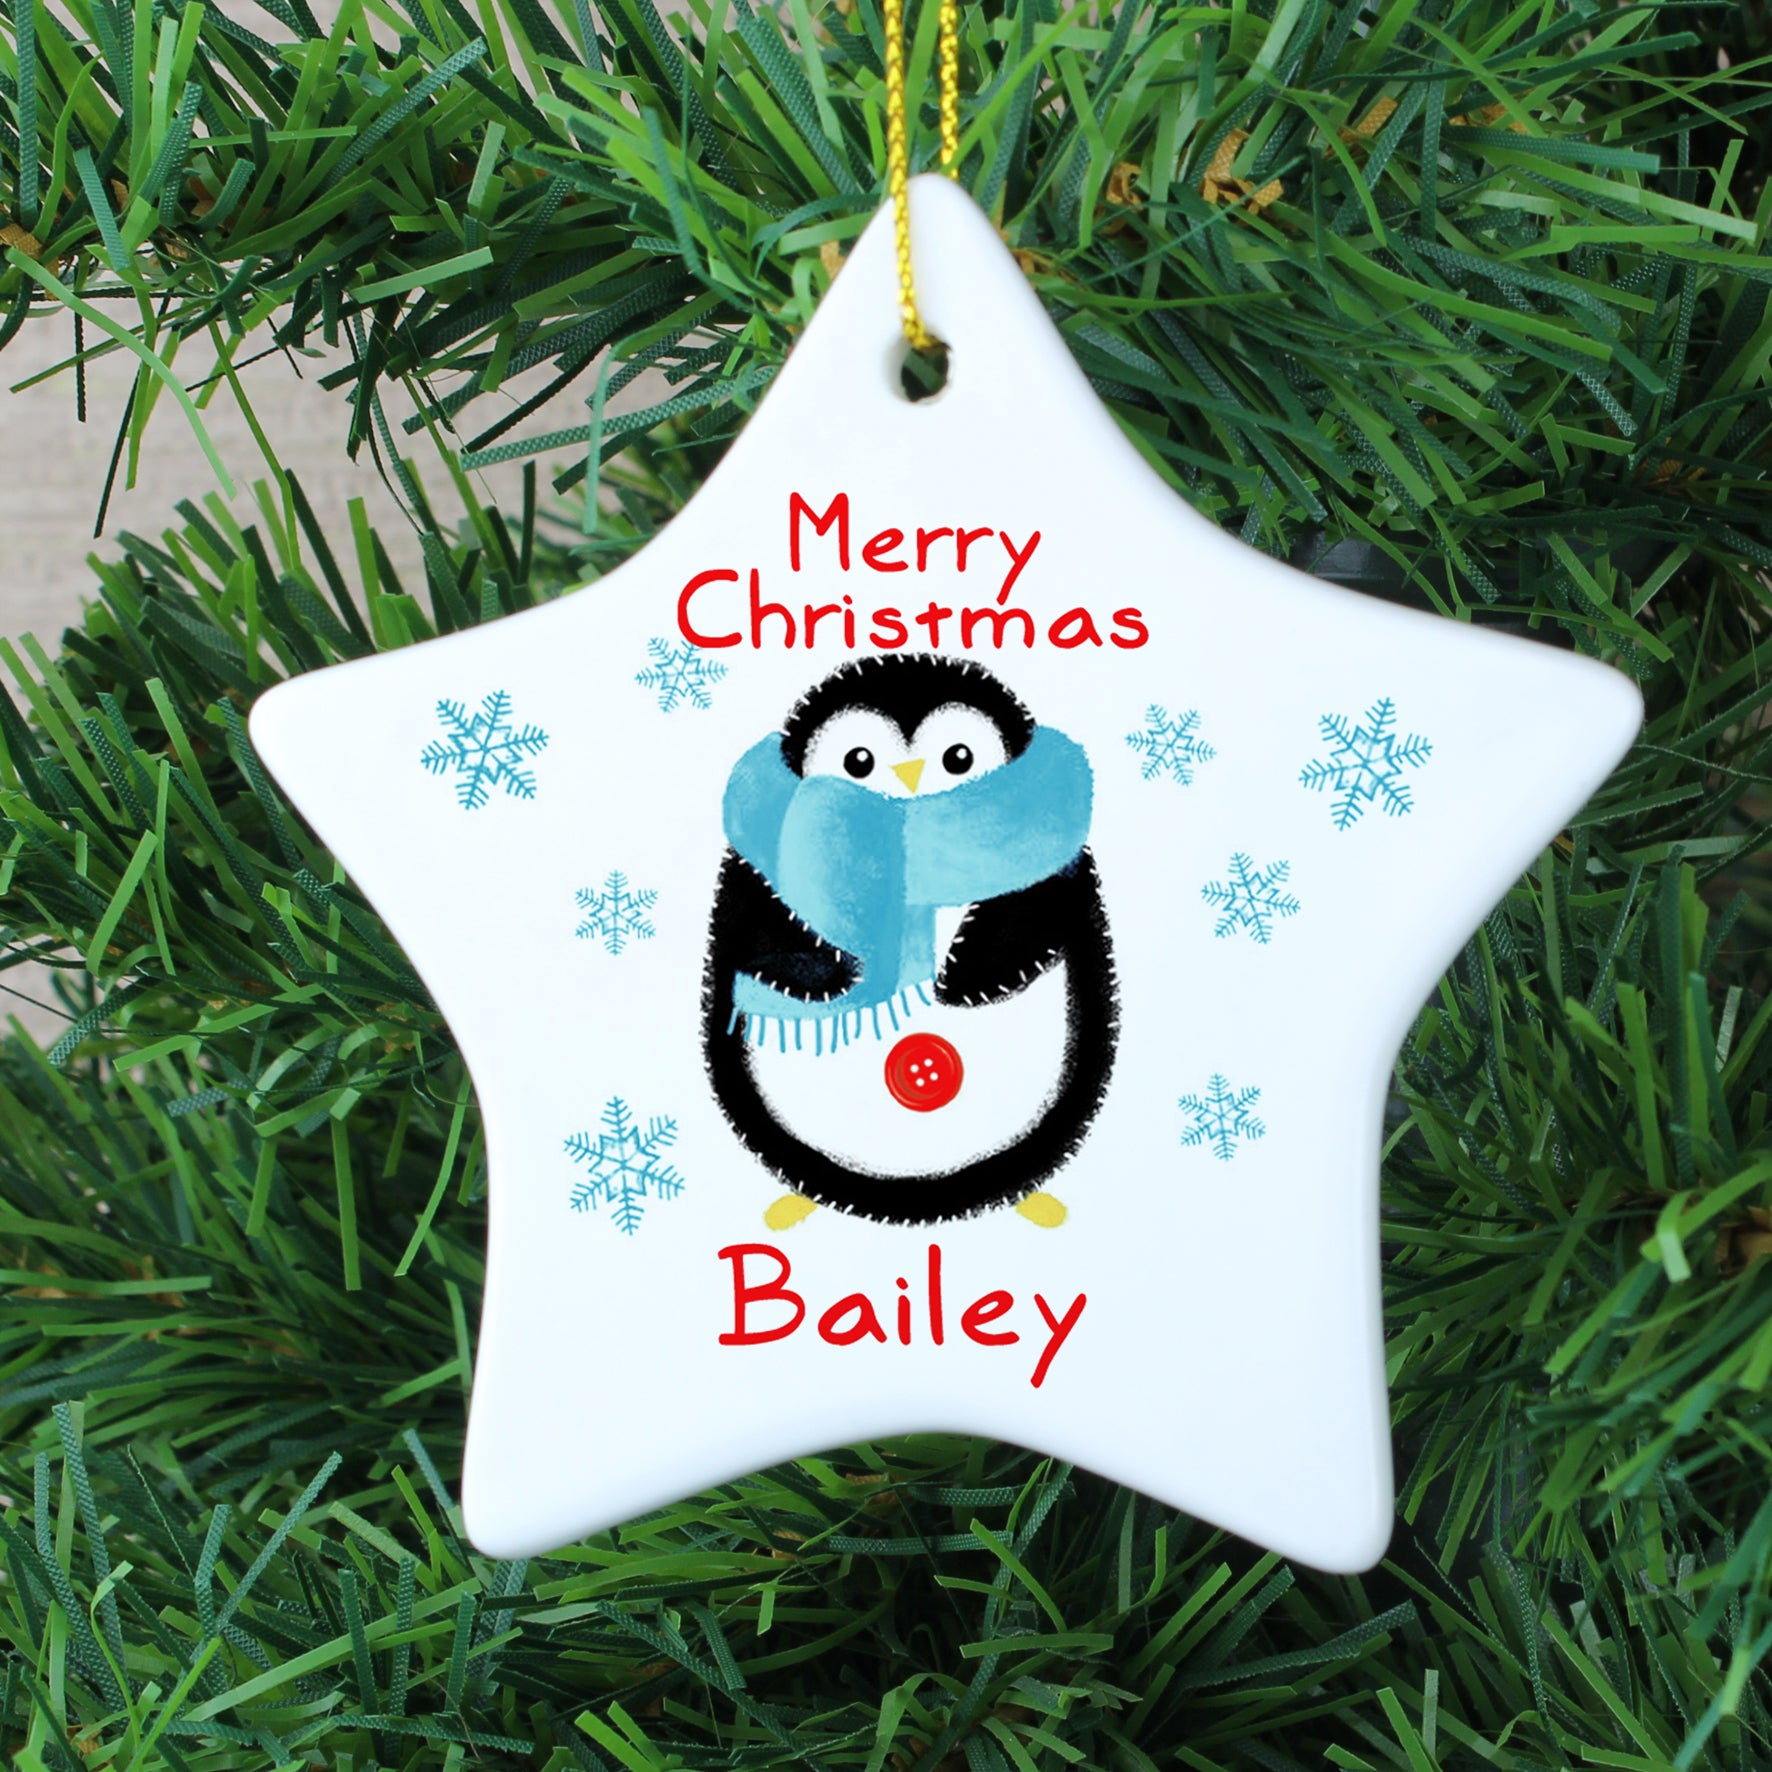 Personalised white ceramic Chrismas star decoration featuring the words 'Merry Christmas' in a red font and an image of a hand drawn penguin wearing a blue scarf. The decoration can be personalised with a name in red which will be printed below the image of the penguin.